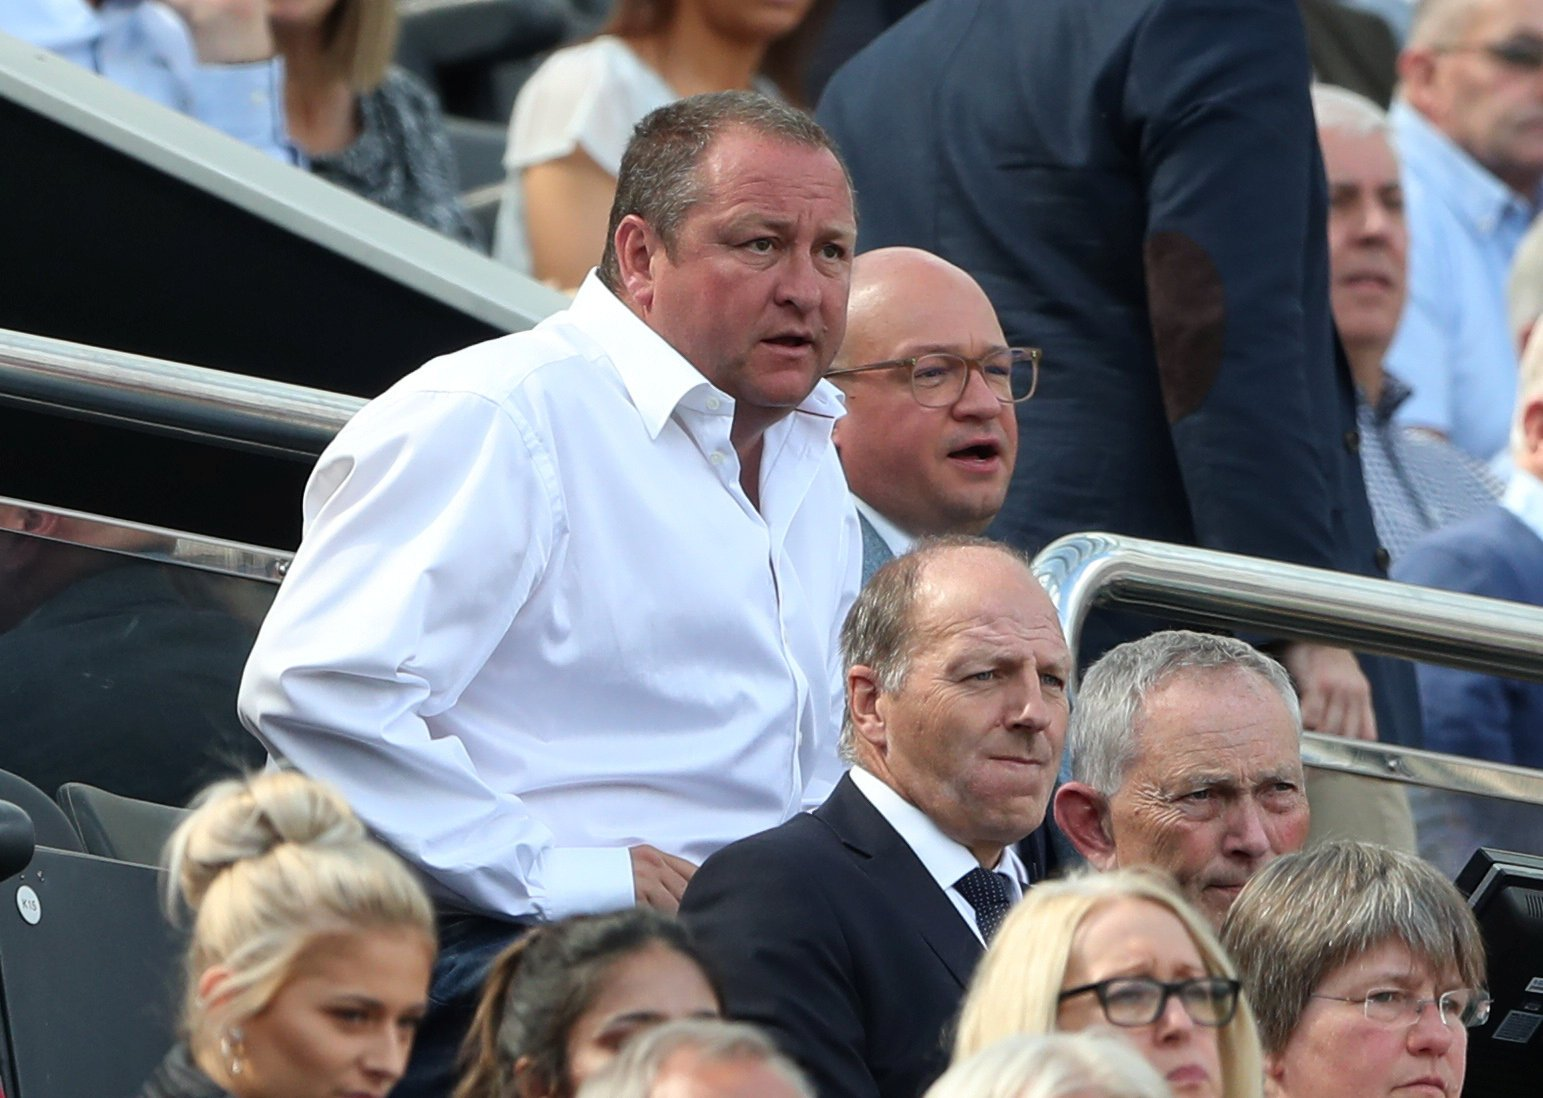 Newcastle fans on Twitter in shock at club's lack of quality